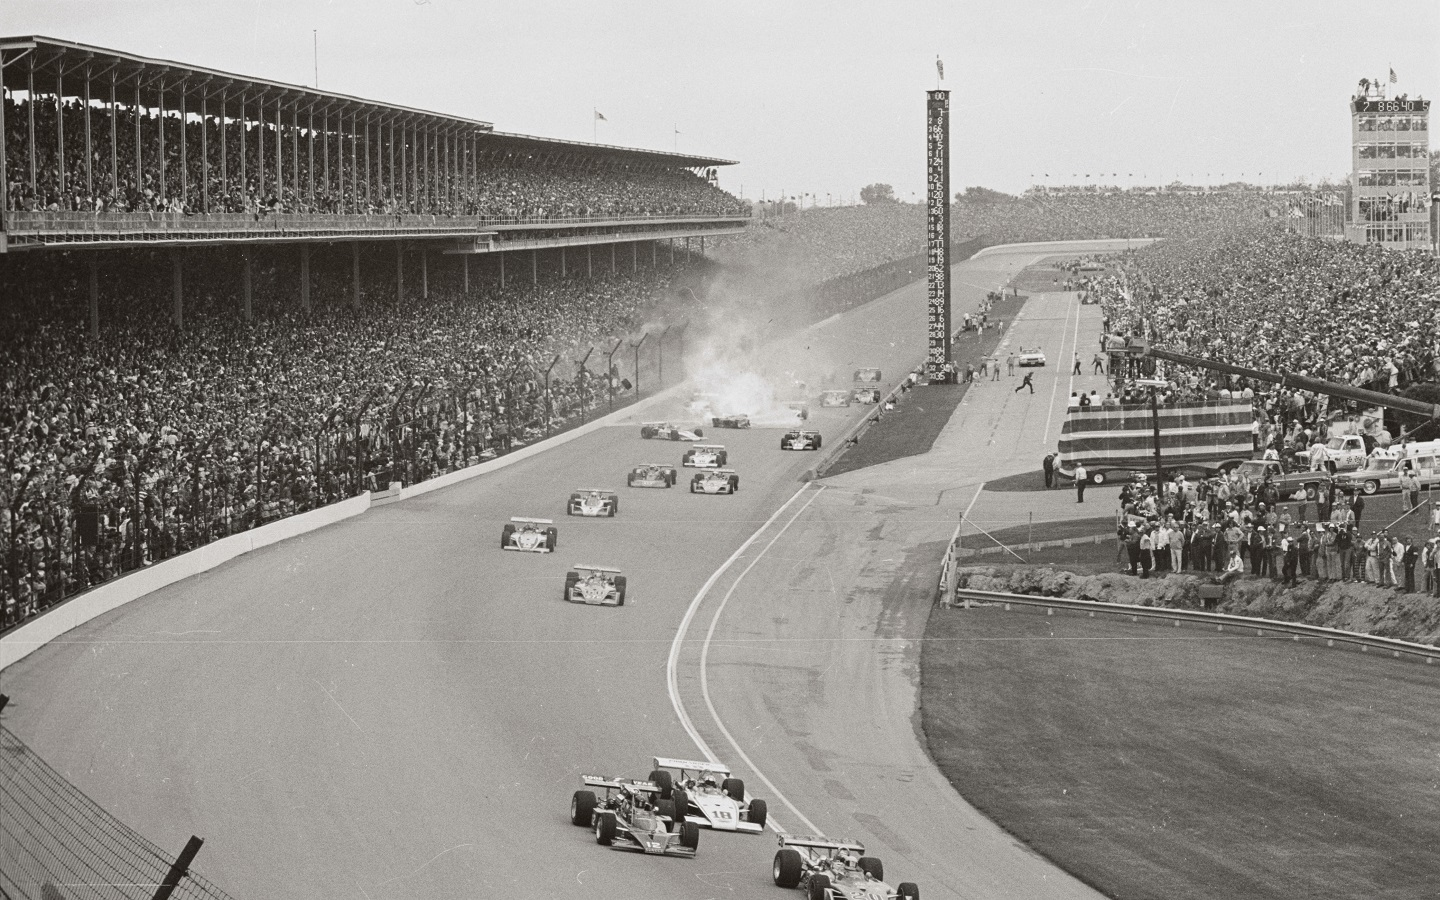 Salt Walther's crash at the 1973 Indianapolis 500